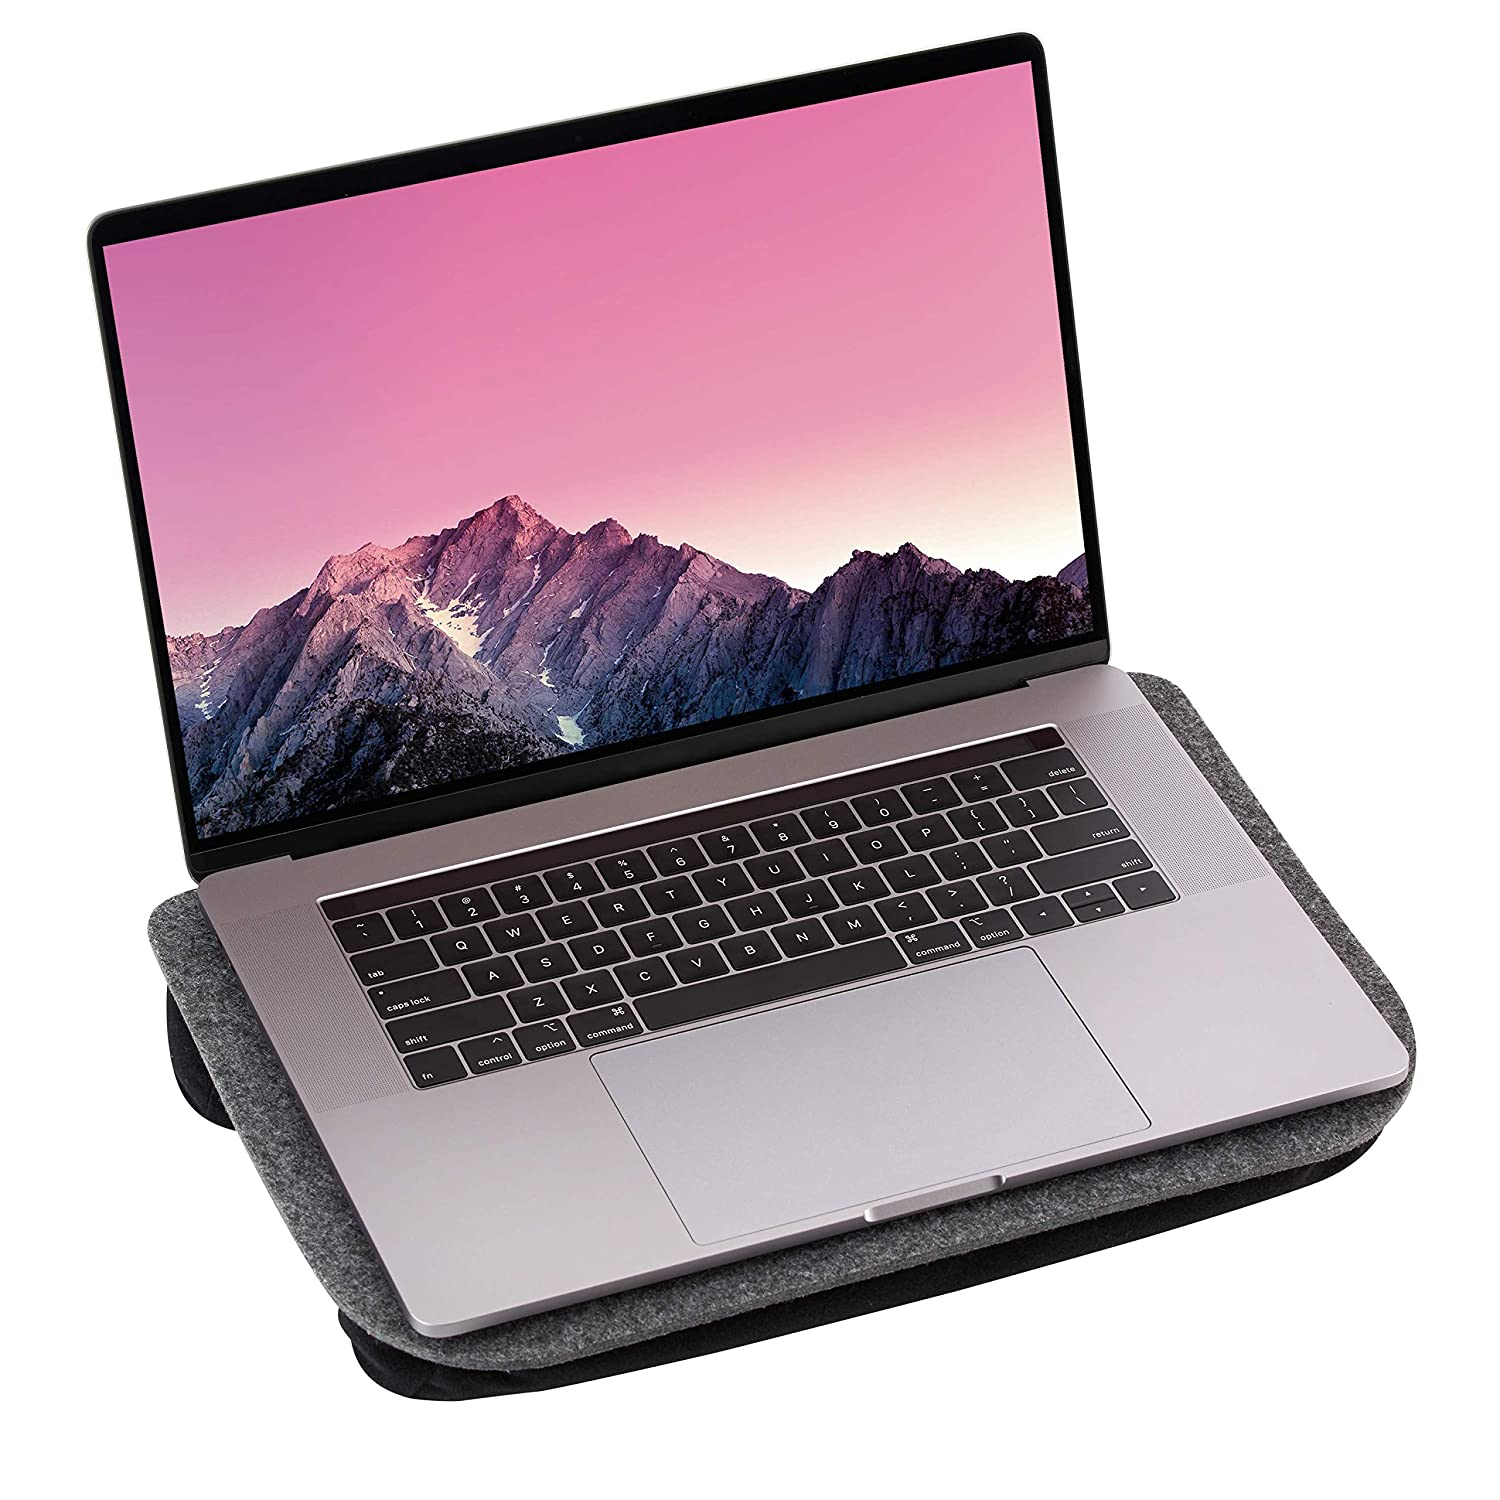 """Lightweight Lap Desk   Portable, Felt Material for Easy Storage   Fits up to 15"""" Laptop   Nomodo"""